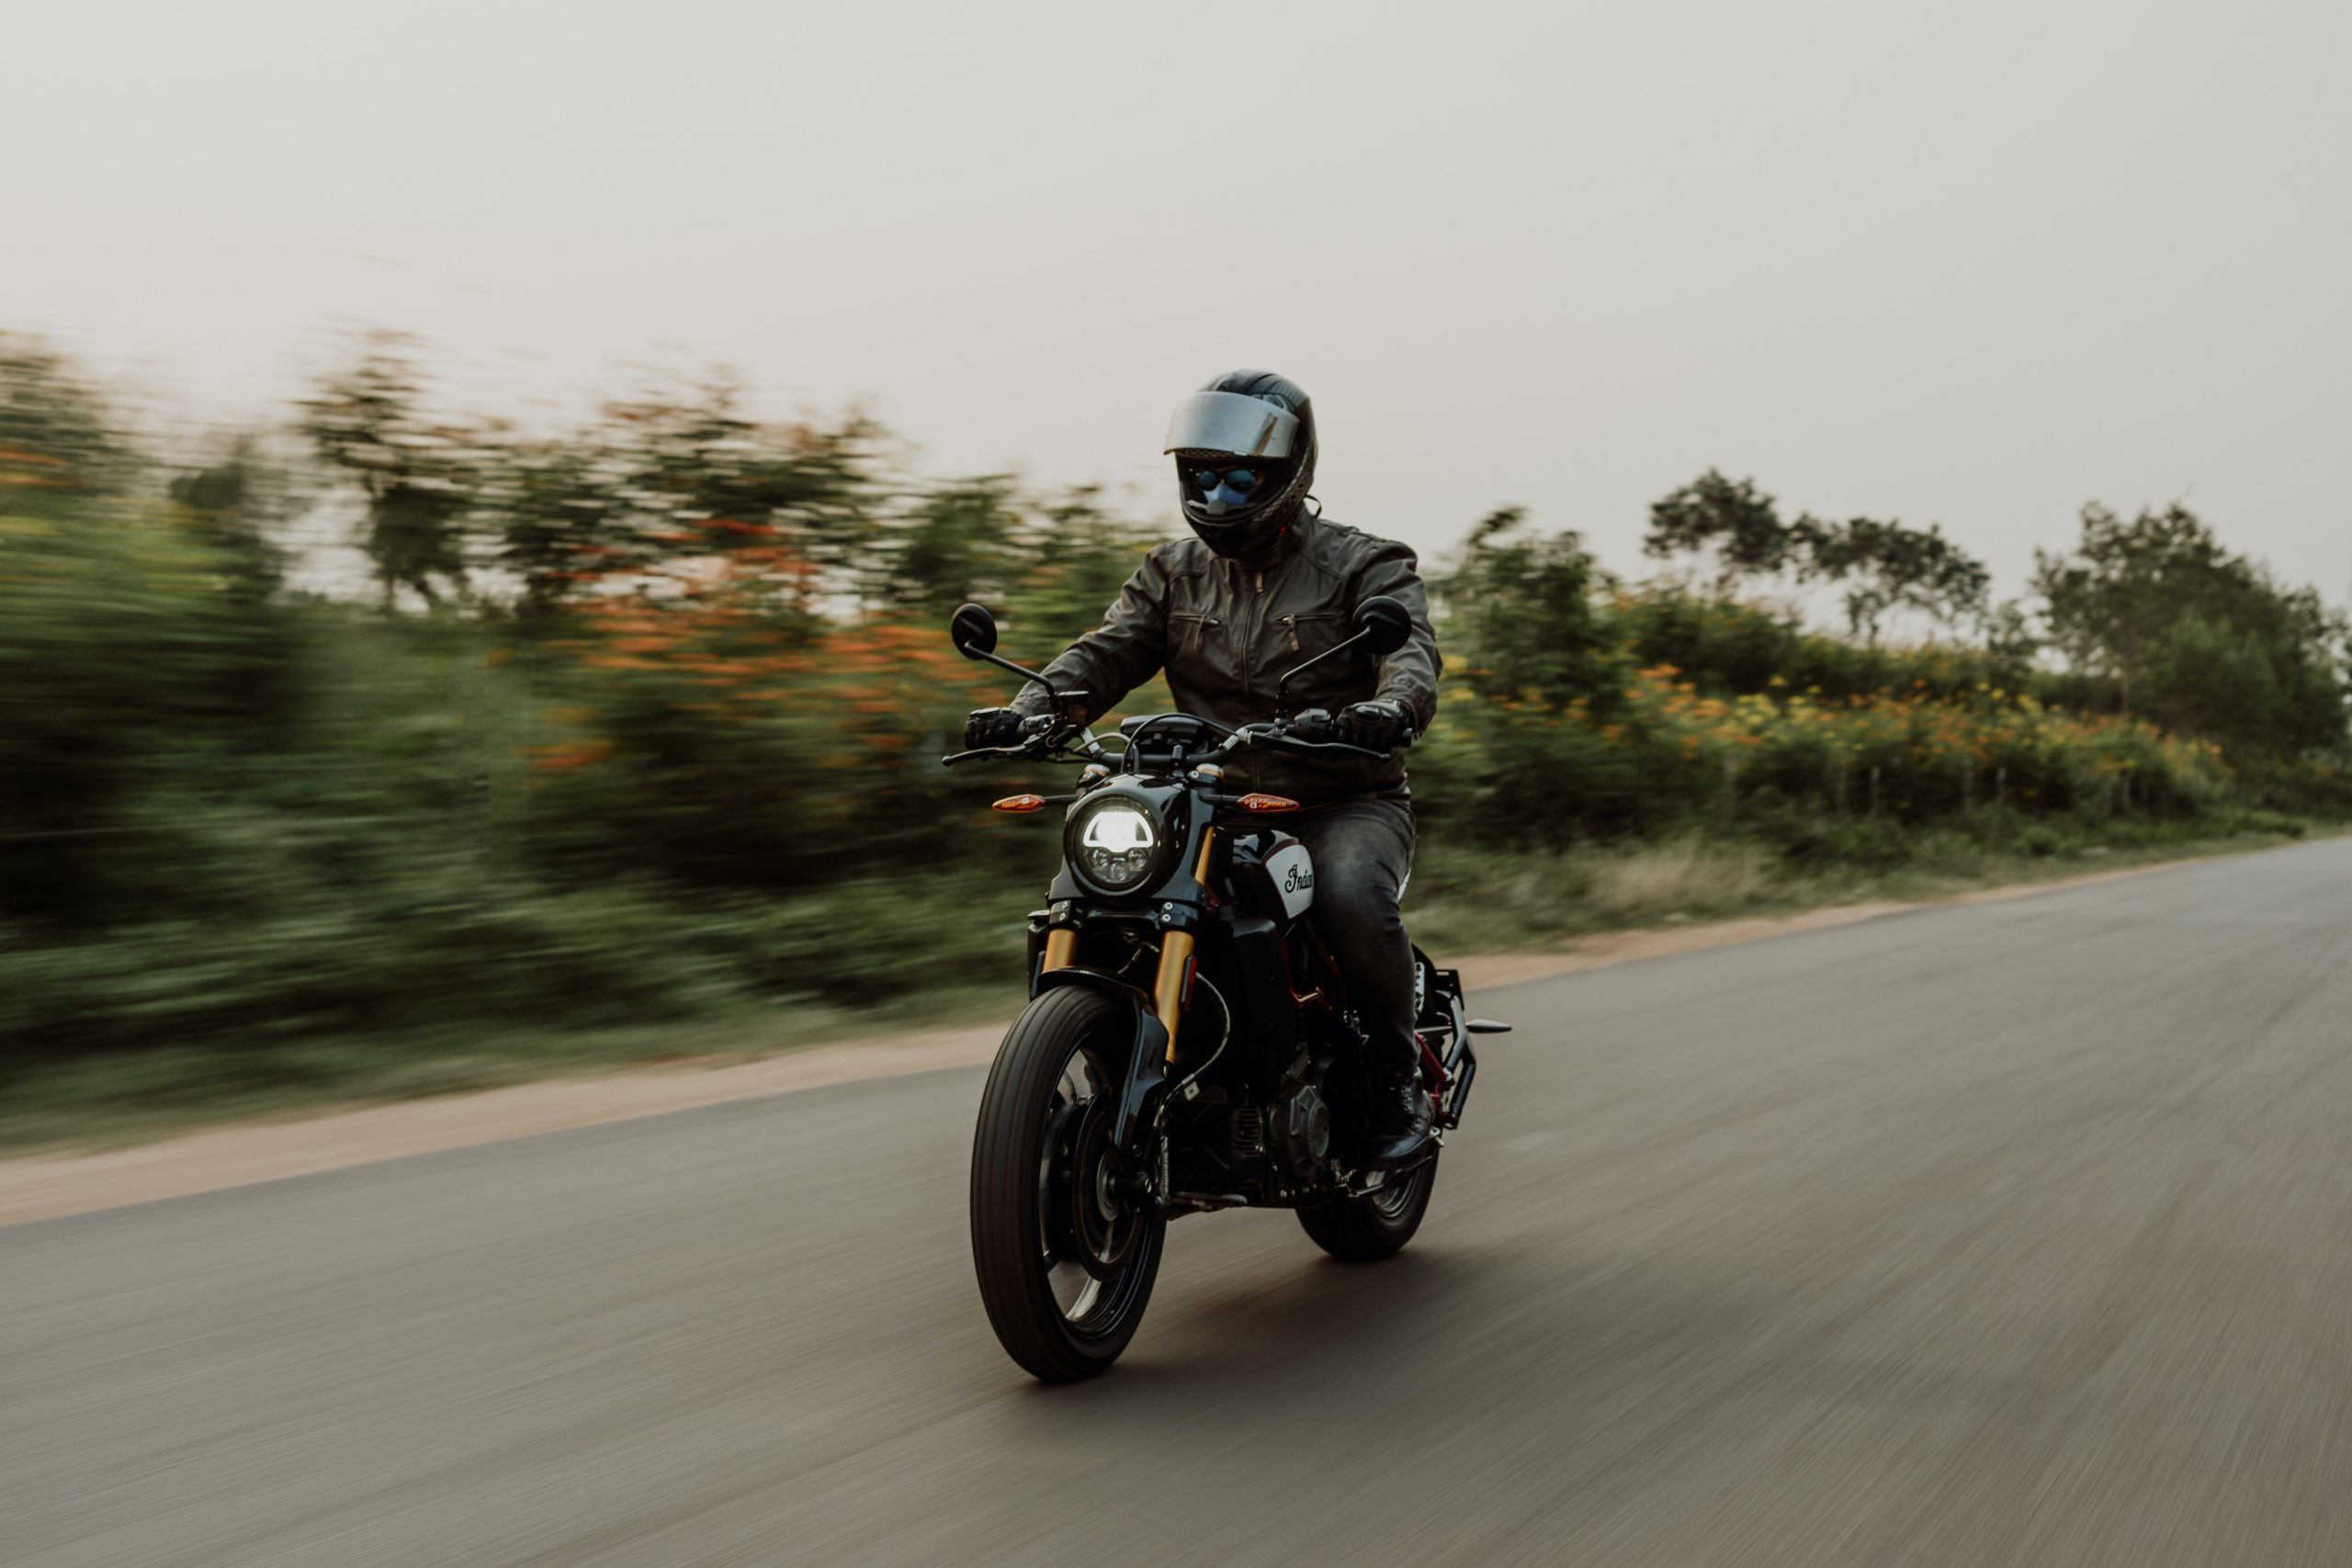 The Best Motorcycle Jackets: Featuring Our Top 4 Picks